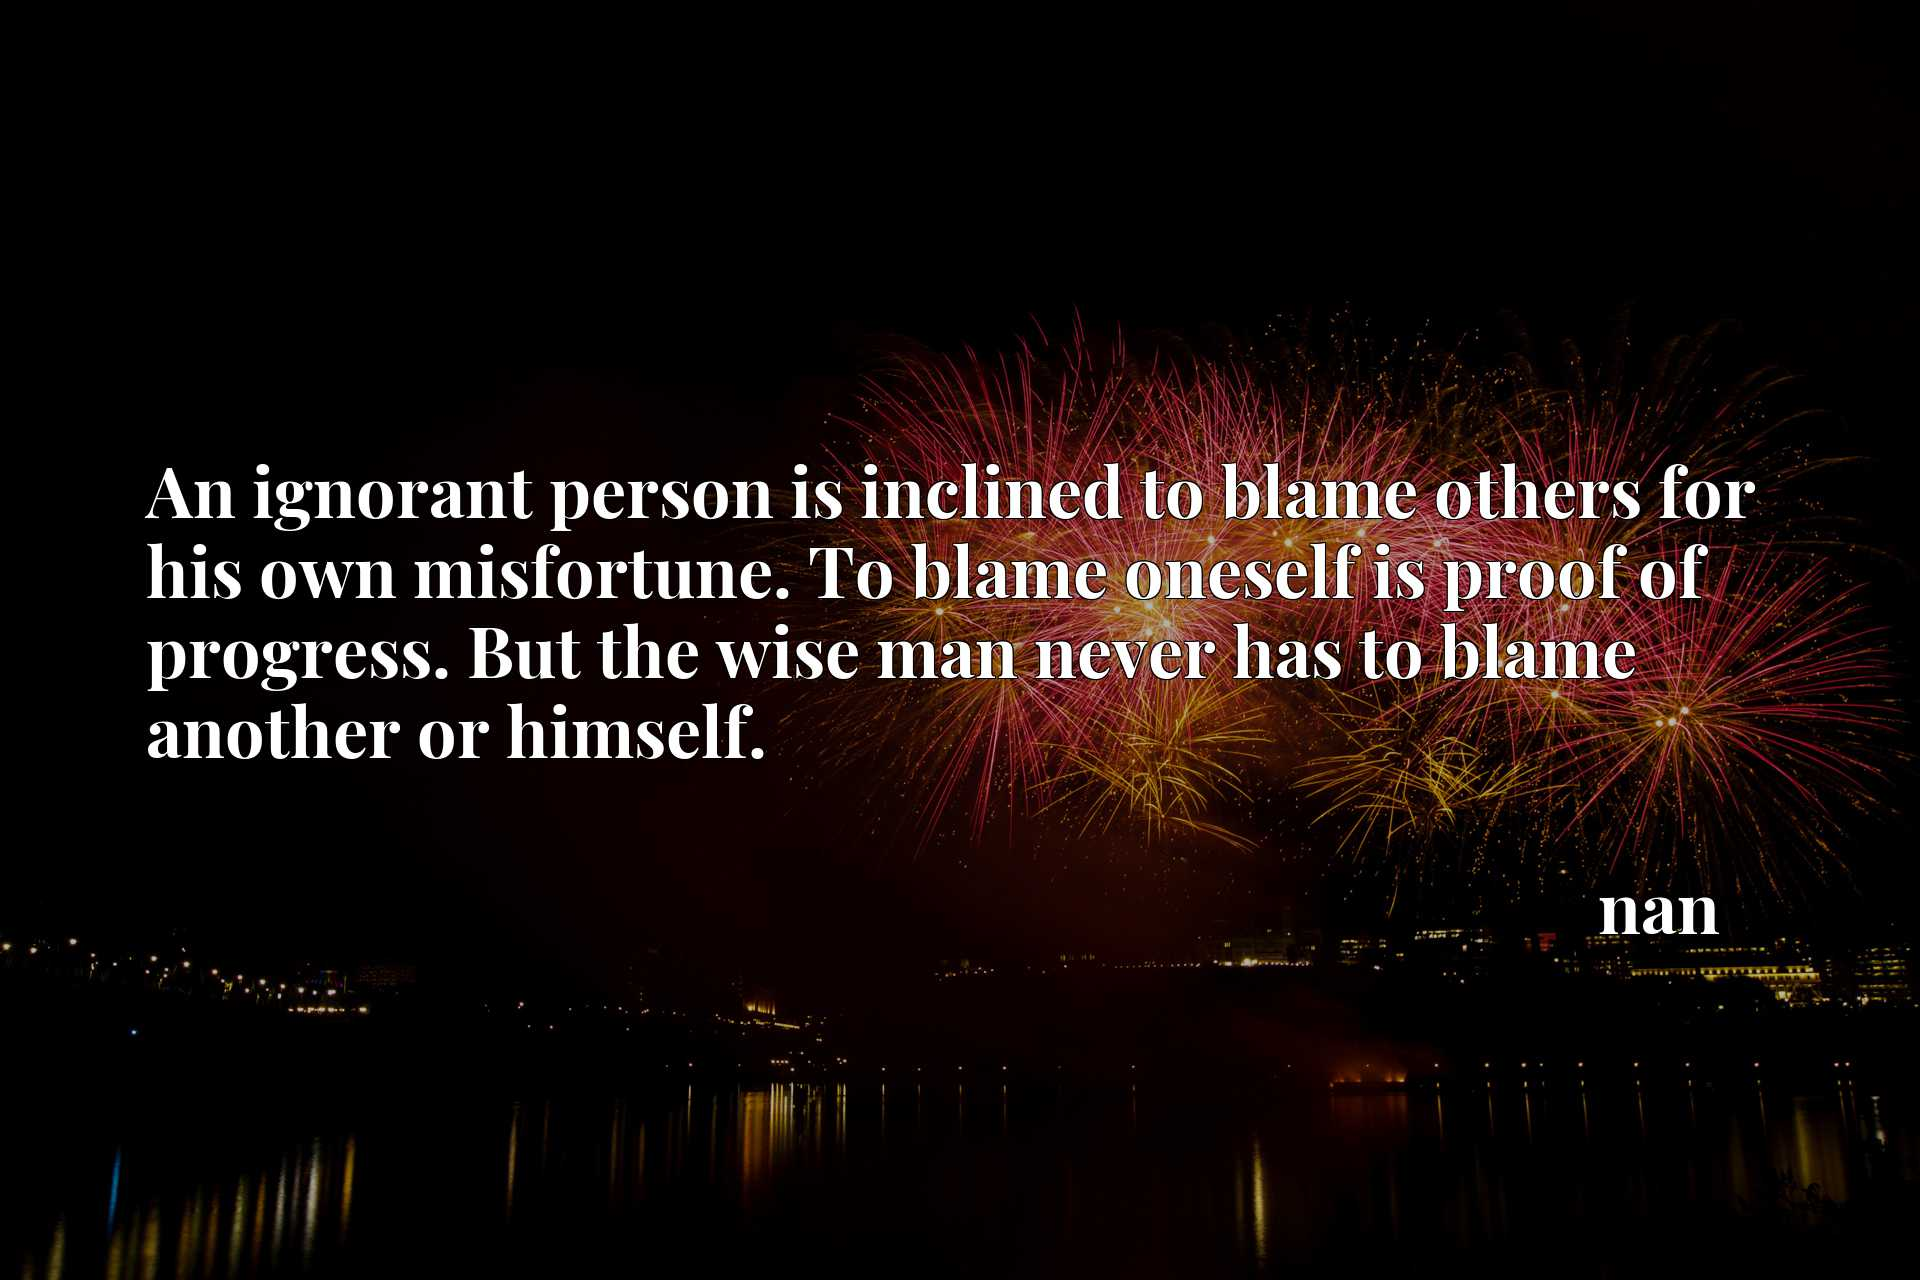 An ignorant person is inclined to blame others for his own misfortune. To blame oneself is proof of progress. But the wise man never has to blame another or himself.